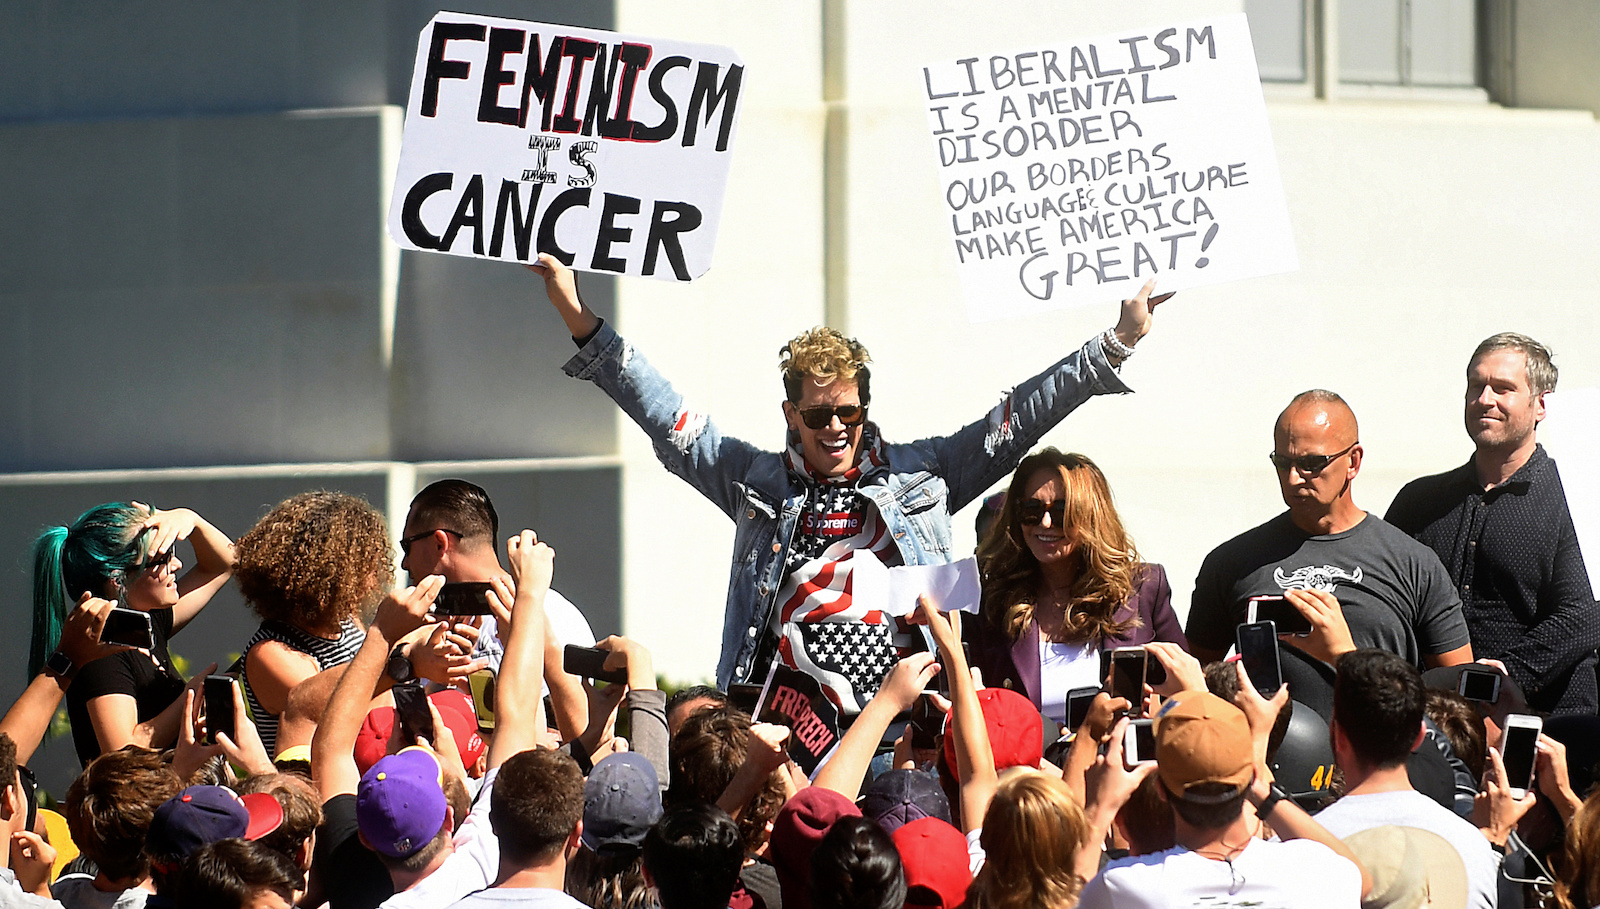 Conservative commentator Milo Yiannopoulos holds protest signs while speaking at the University of California in Berkeley, California, U.S., September 24, 2017. REUTERS/Noah Berger - RC1C6BA75150